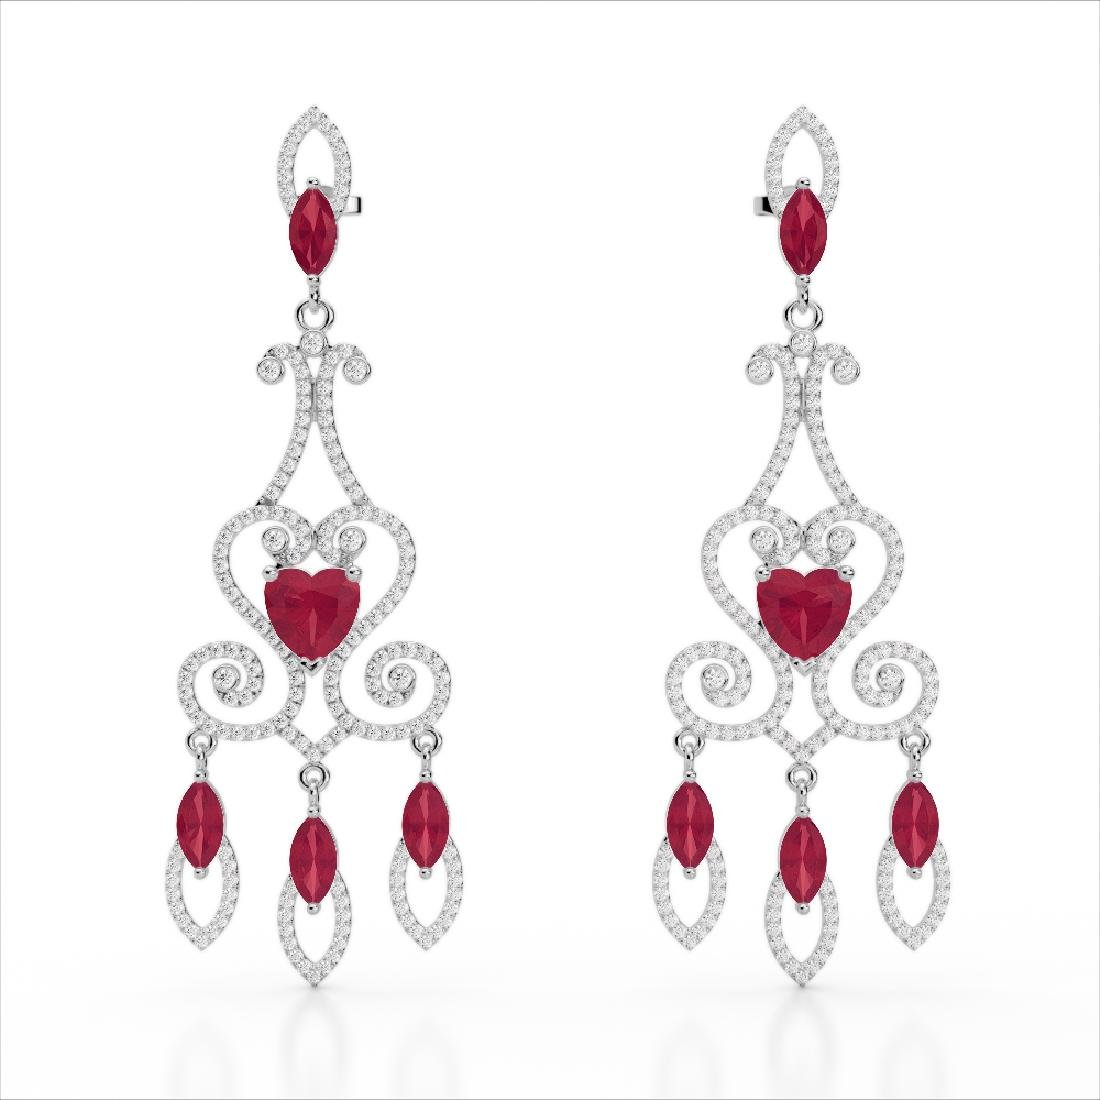 11 CTW Ruby & Micro Pave VS/SI Diamond Earrings 14K - 2